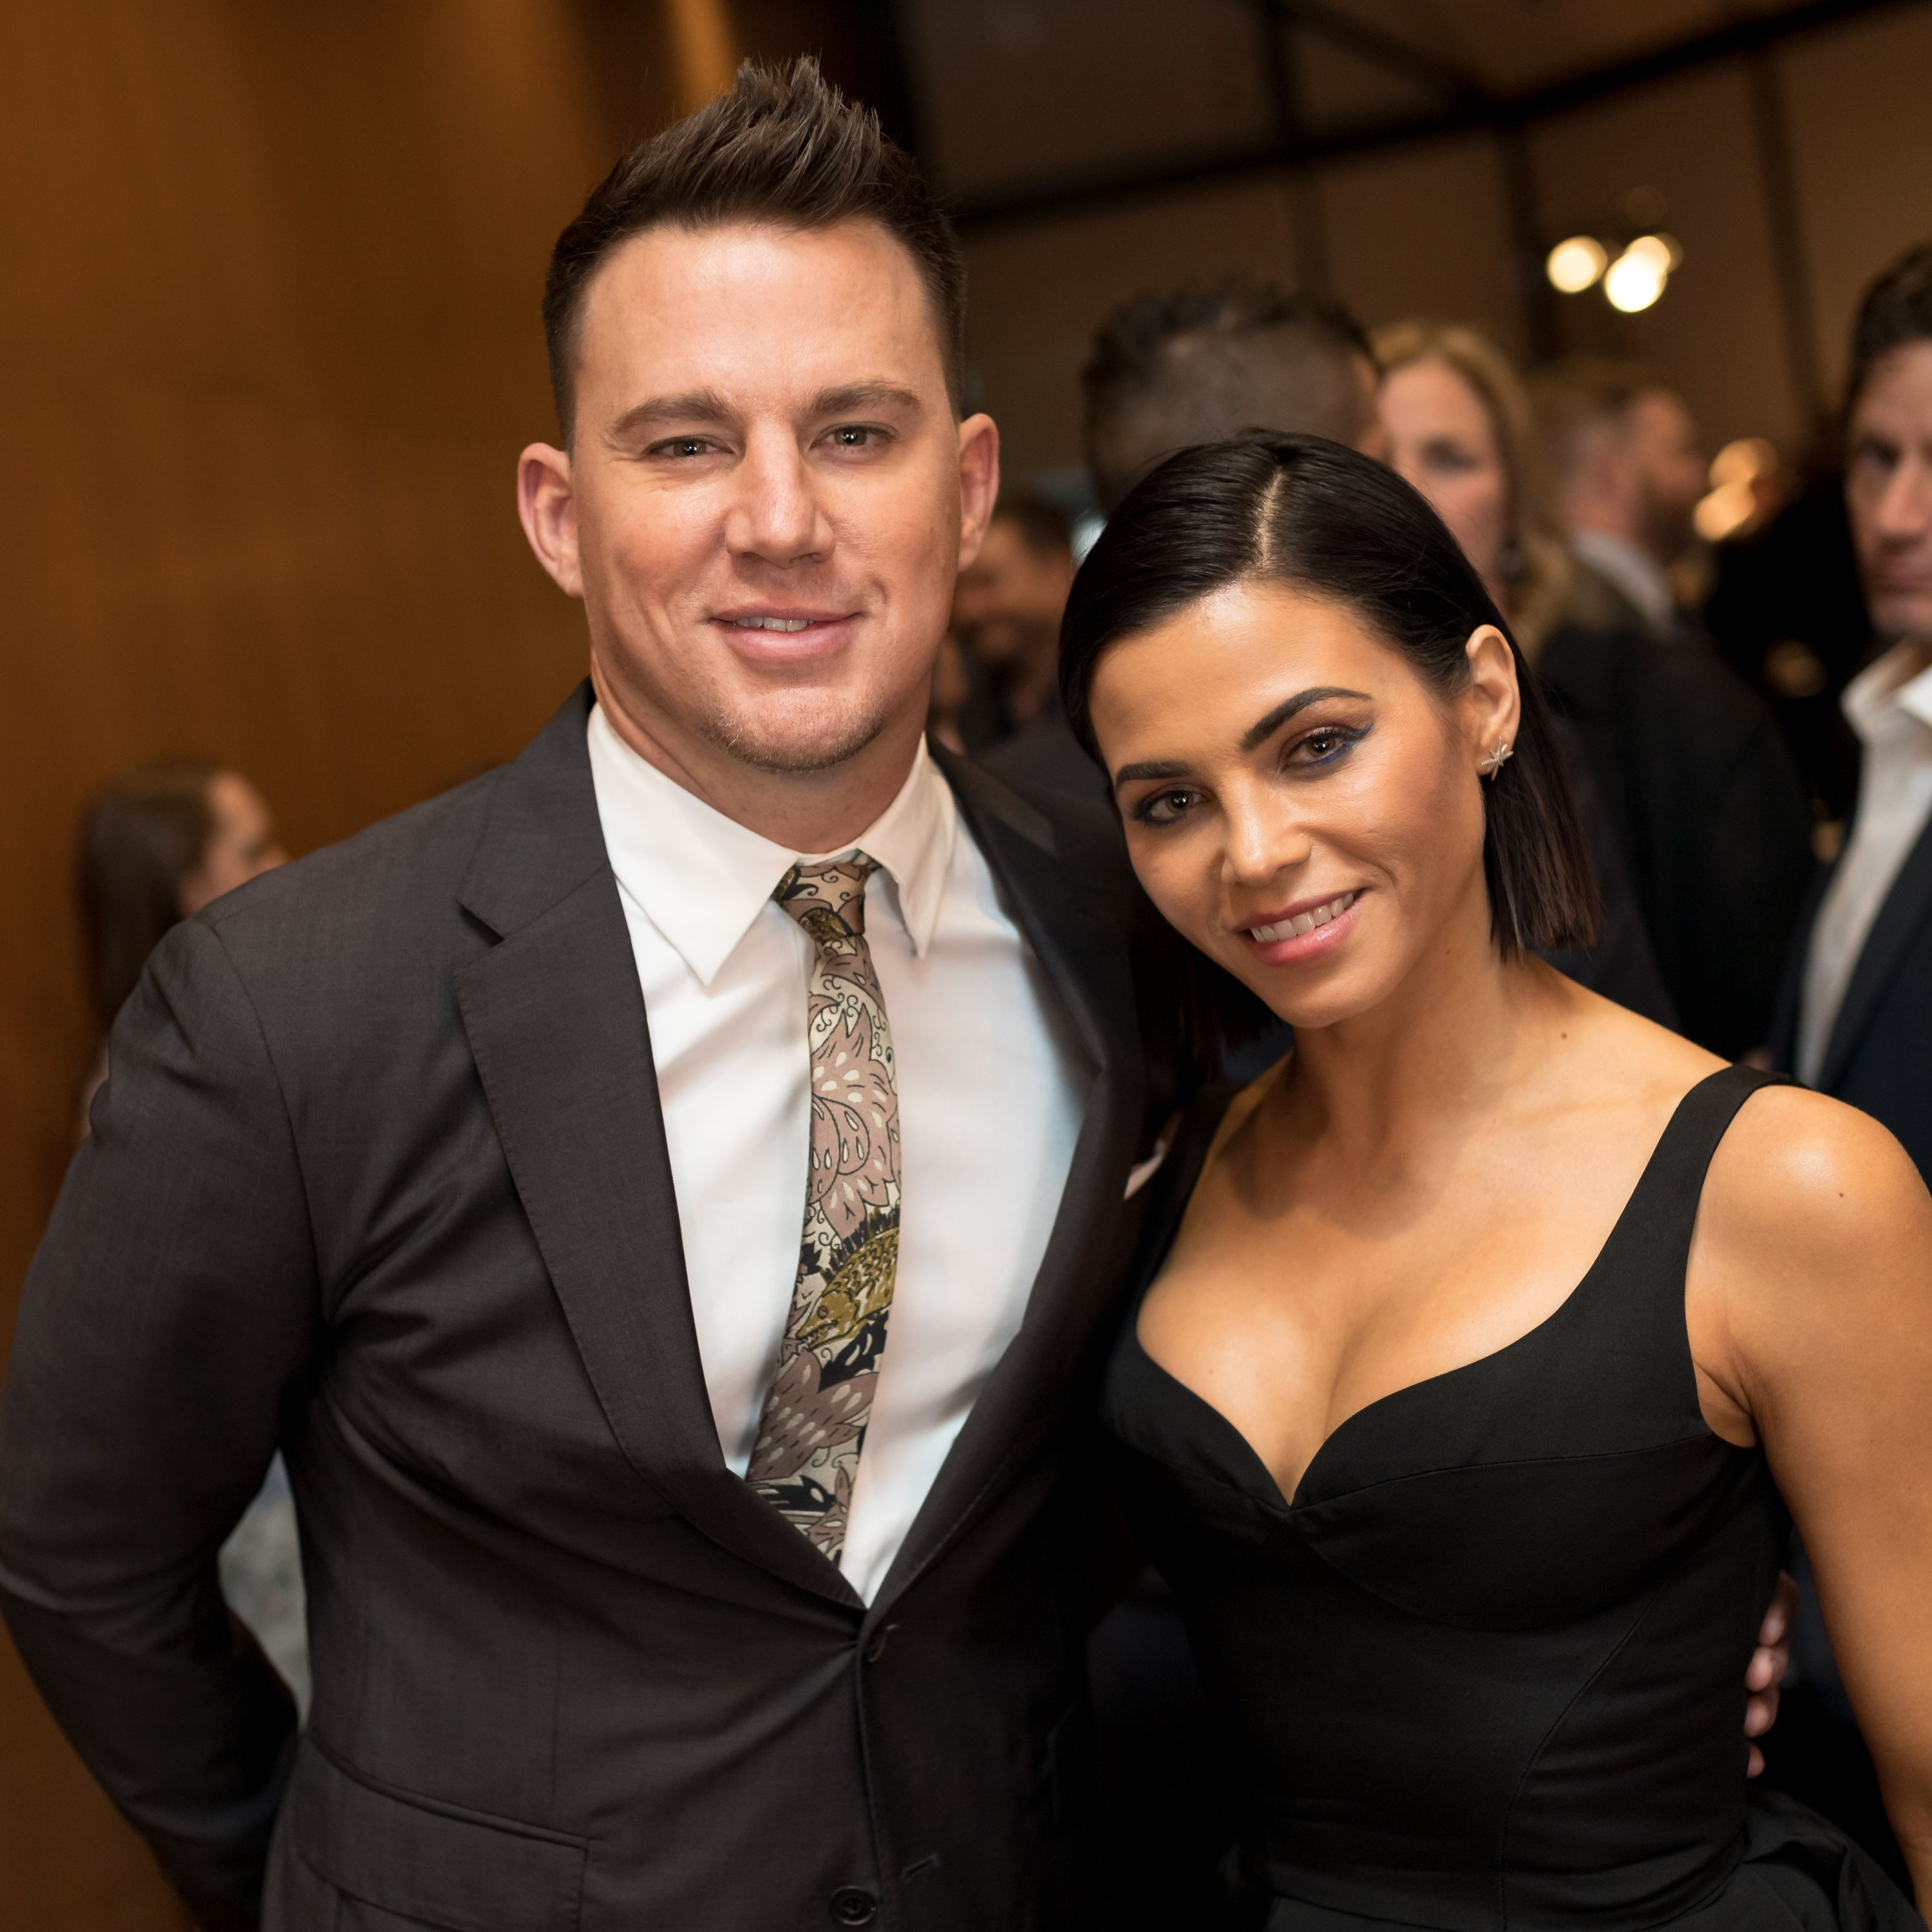 """Channing Tatum and Jenna Dewan Channing and Jenna always seemed solid, so it was a surprise to fans when the couple announced in 2018 that they were separating. """"We have lovingly chosen to separate as a couple,""""  they said in a joint statement on Instagram ."""